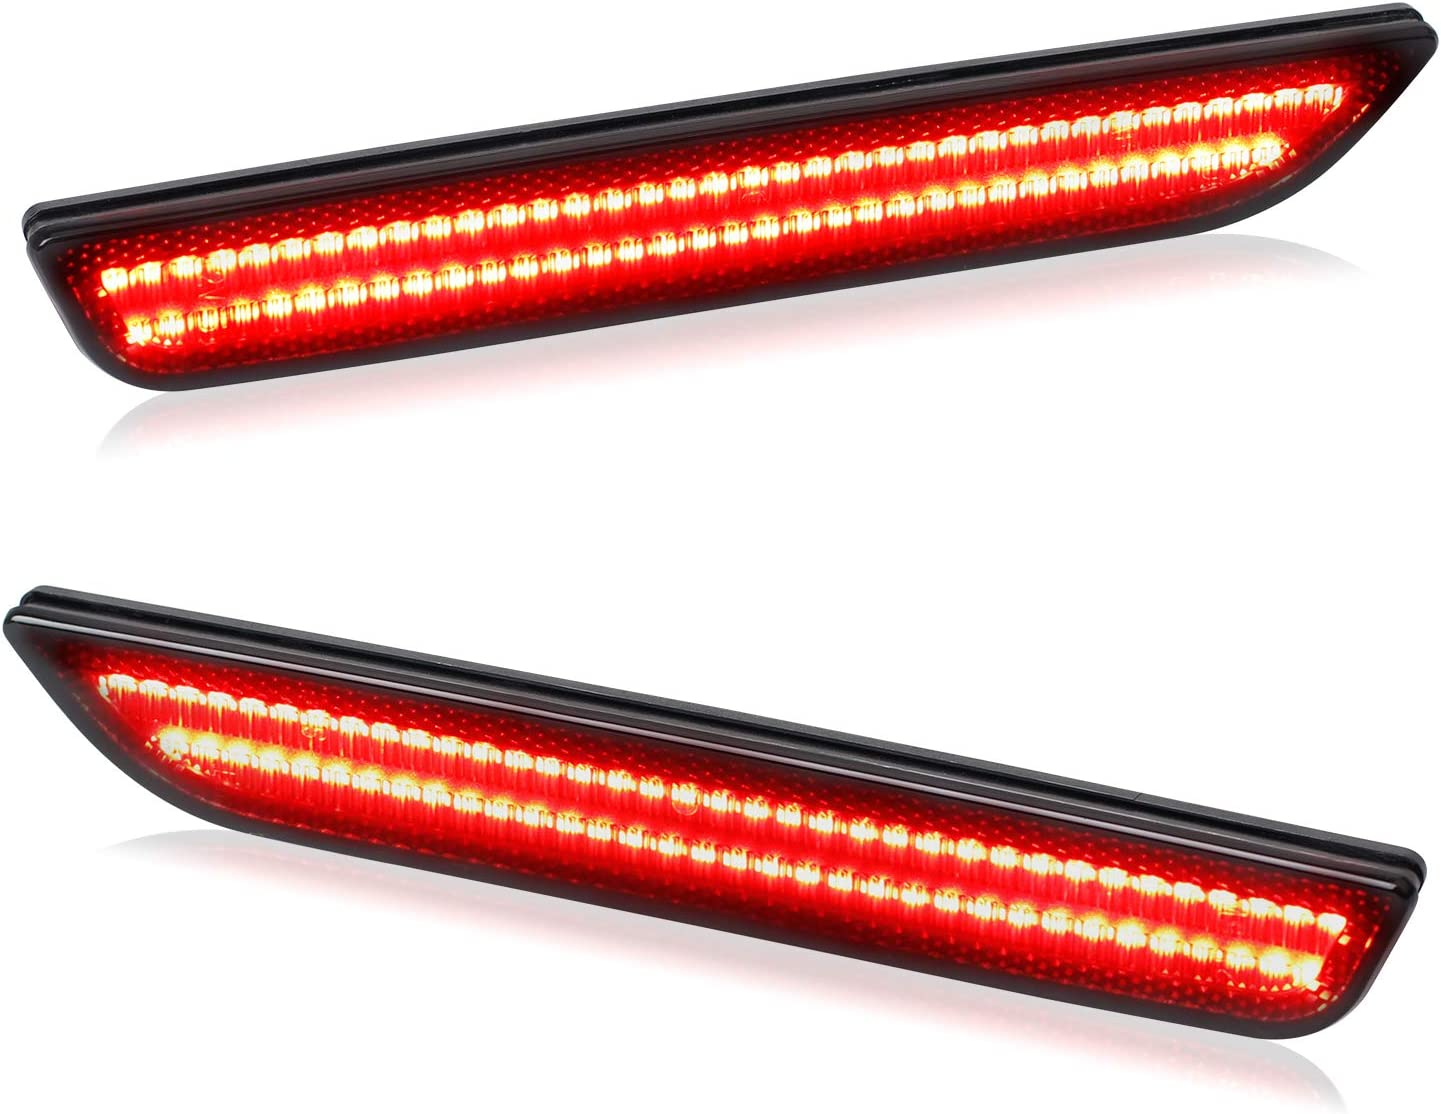 Pack of 2 RUXIFEY Smoked LED Side Marker Lights Rear Sidemarker Lamps Compatible with Ford Mustang 2010 to 2014 Red